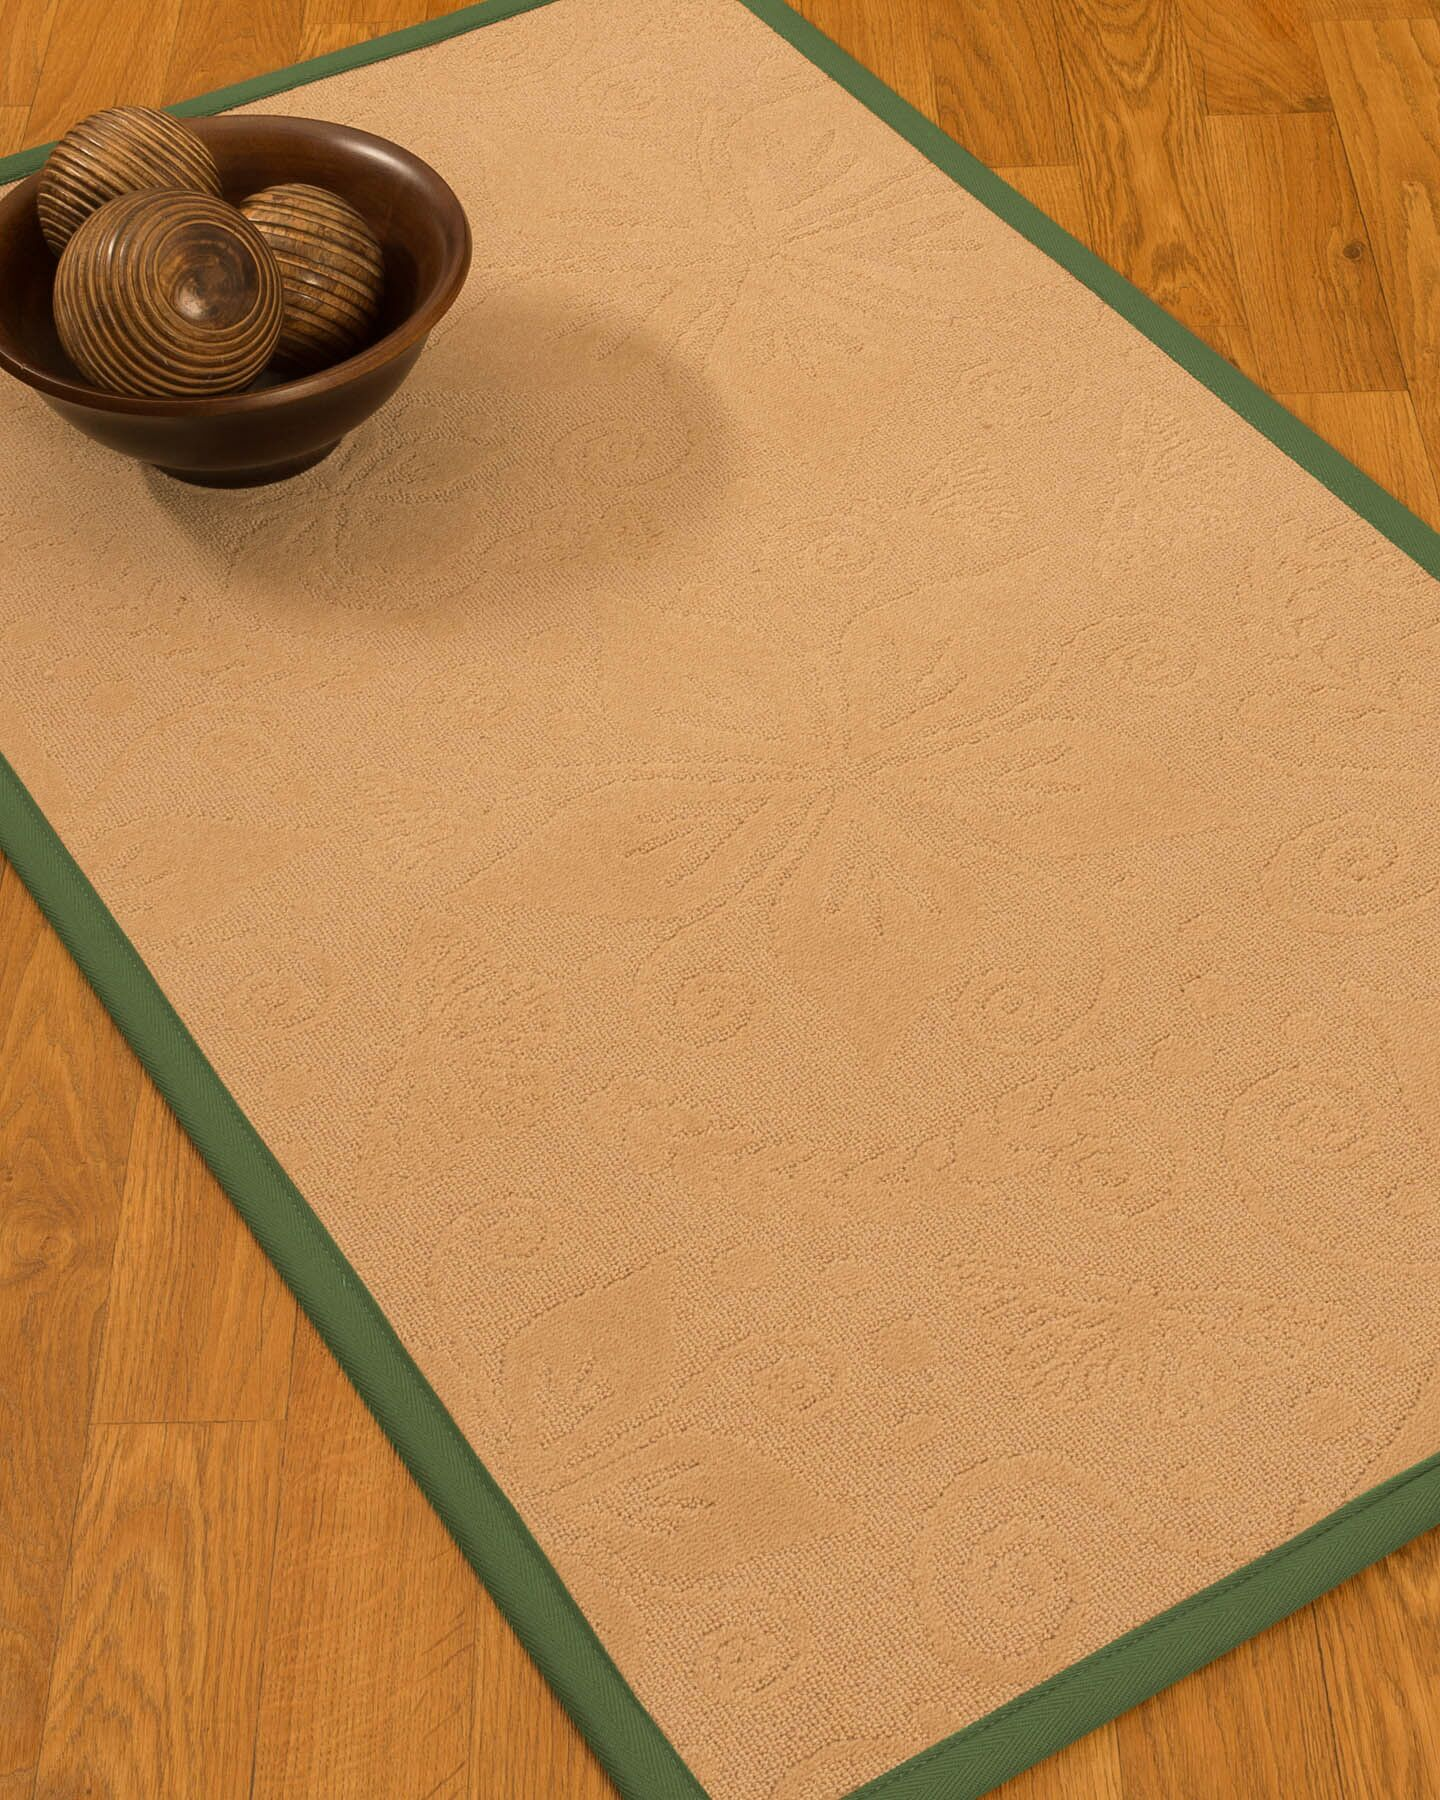 Vanmeter Border Hand-Woven Wool Beige/Green Area Rug Rug Pad Included: No, Rug Size: Rectangle 3' x 5'